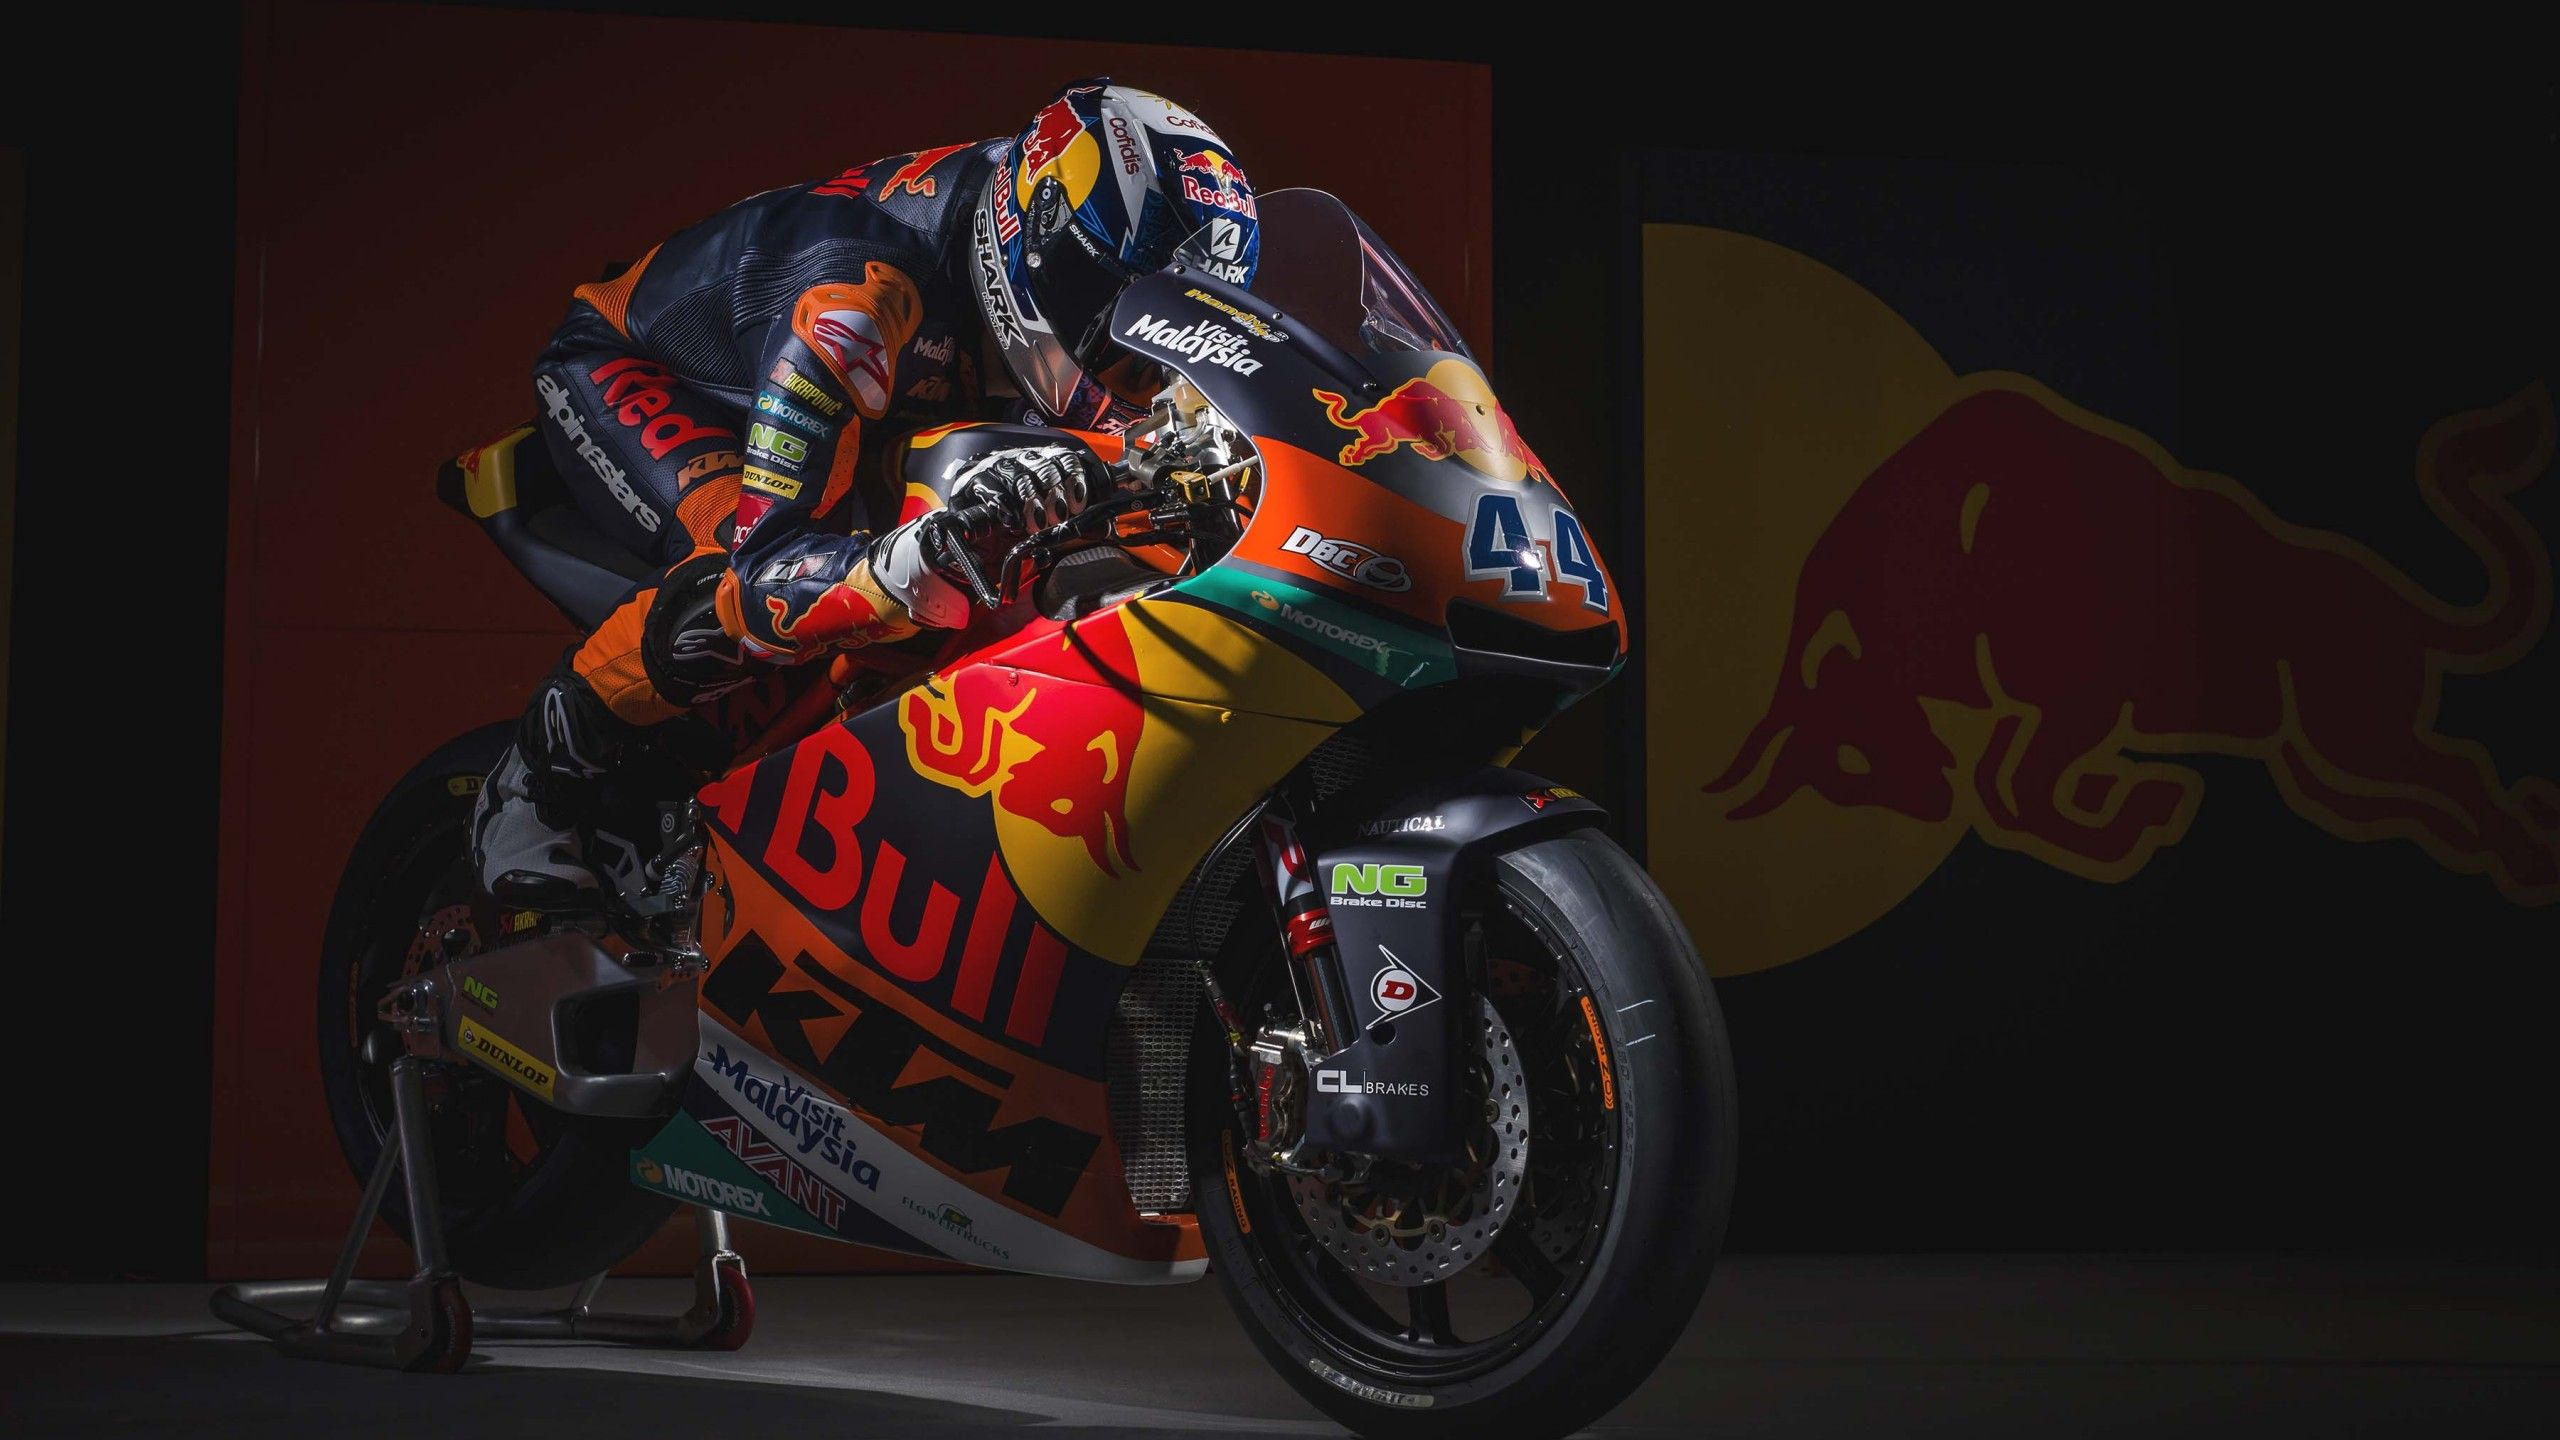 Motogp Wallpaper Valentino Rossi Motogp Wallpapers Ktm Motogp Racing Bikes